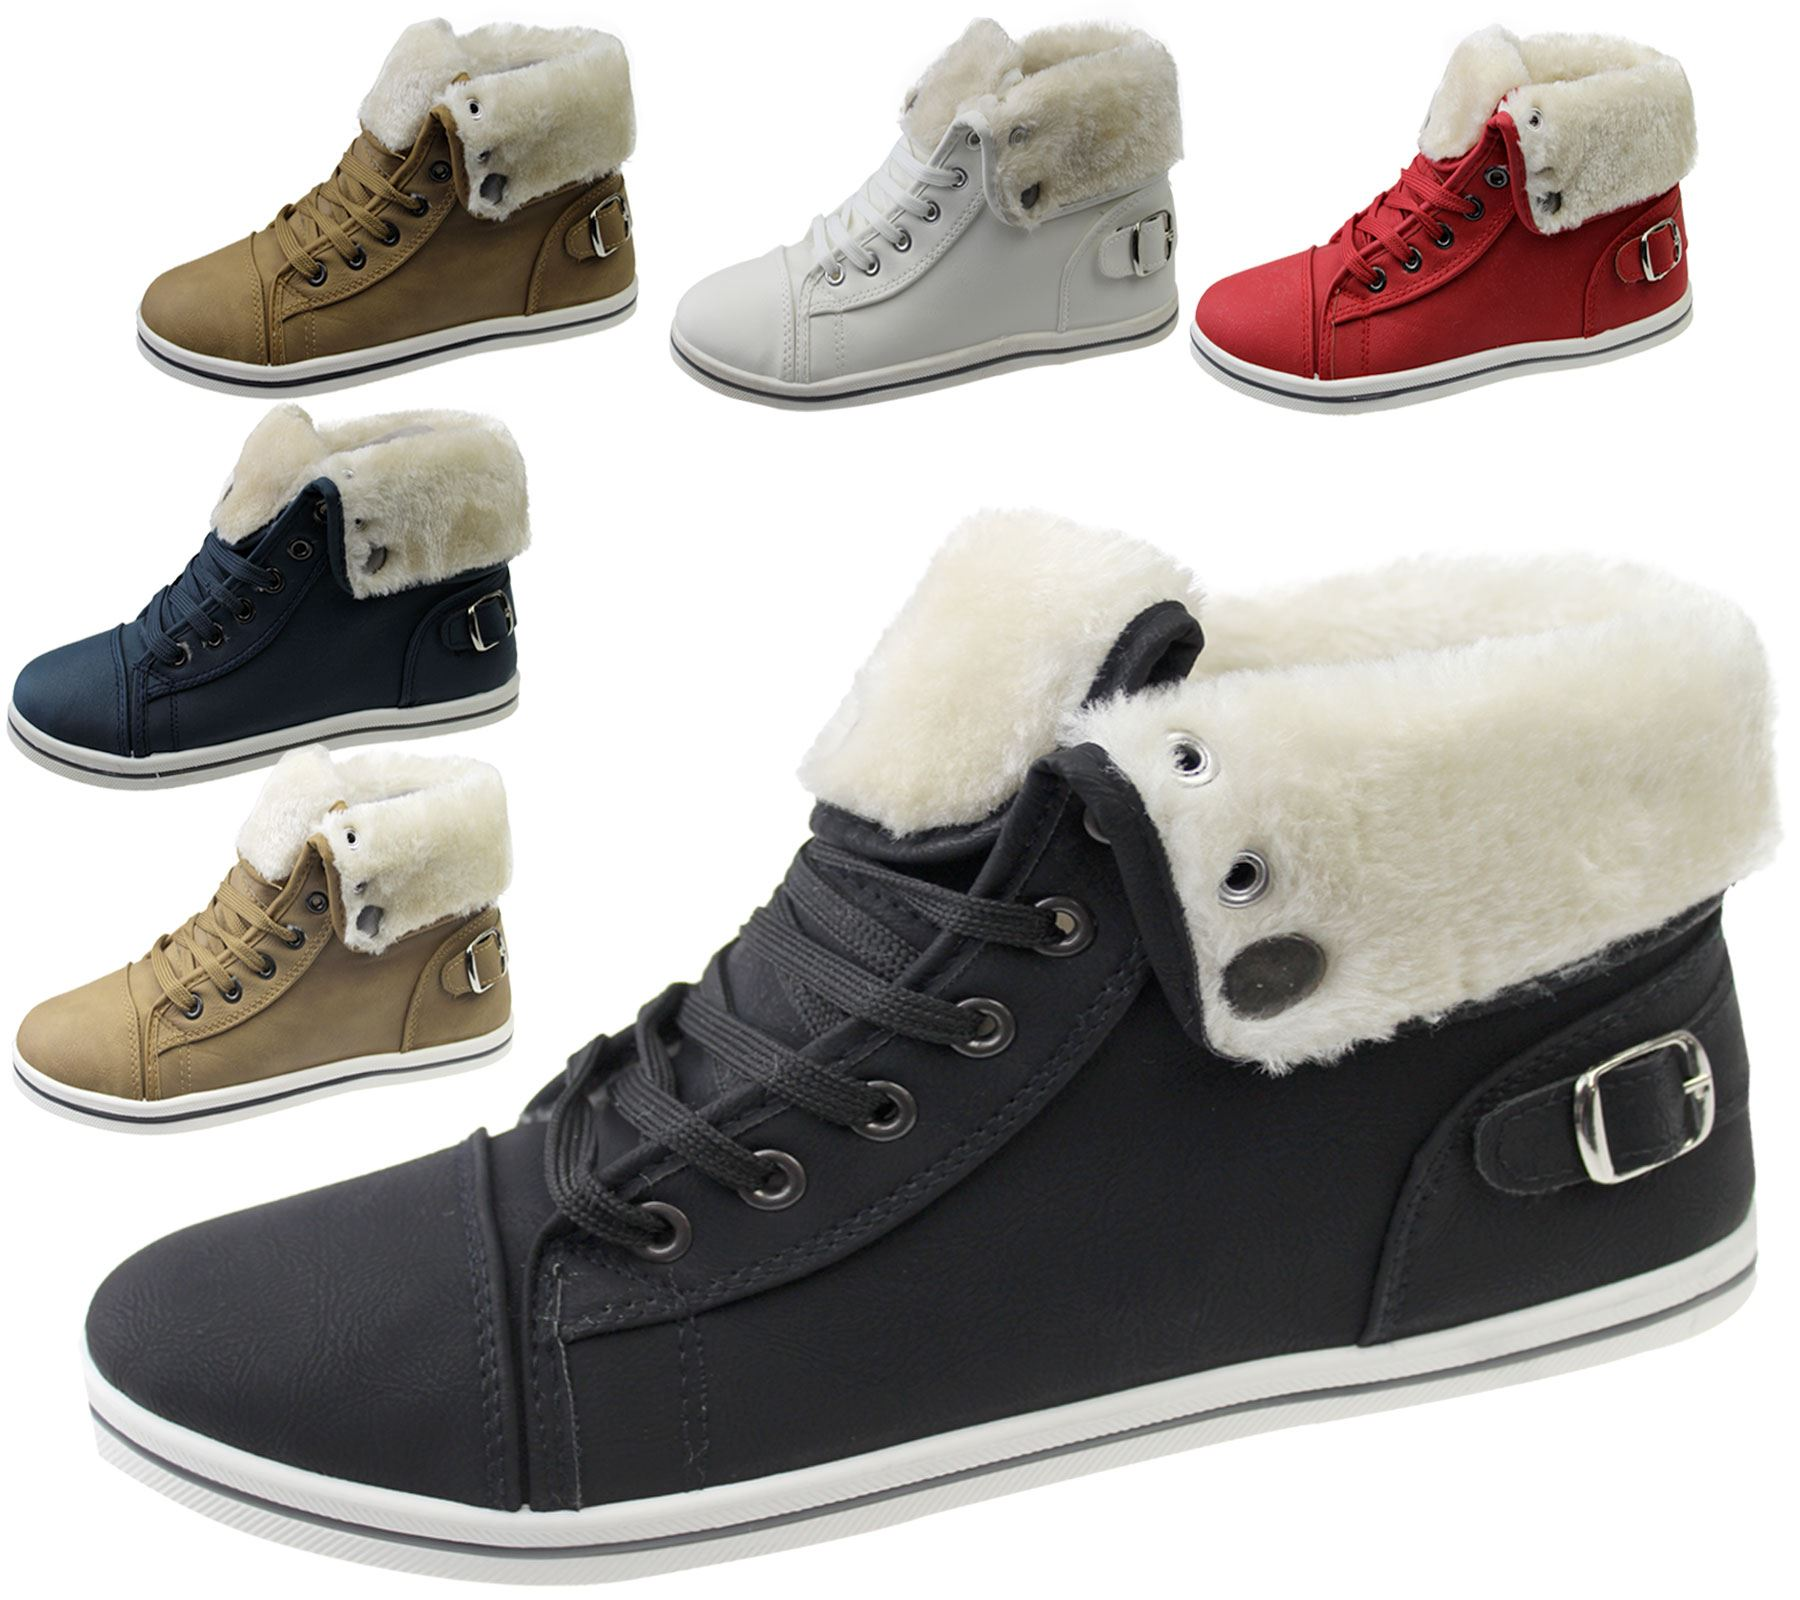 Girls-Boots-Womens-Warm-Lined-High-Top-Ankle-Trainer-Ladies-Winter-Shoes-Size miniatura 23